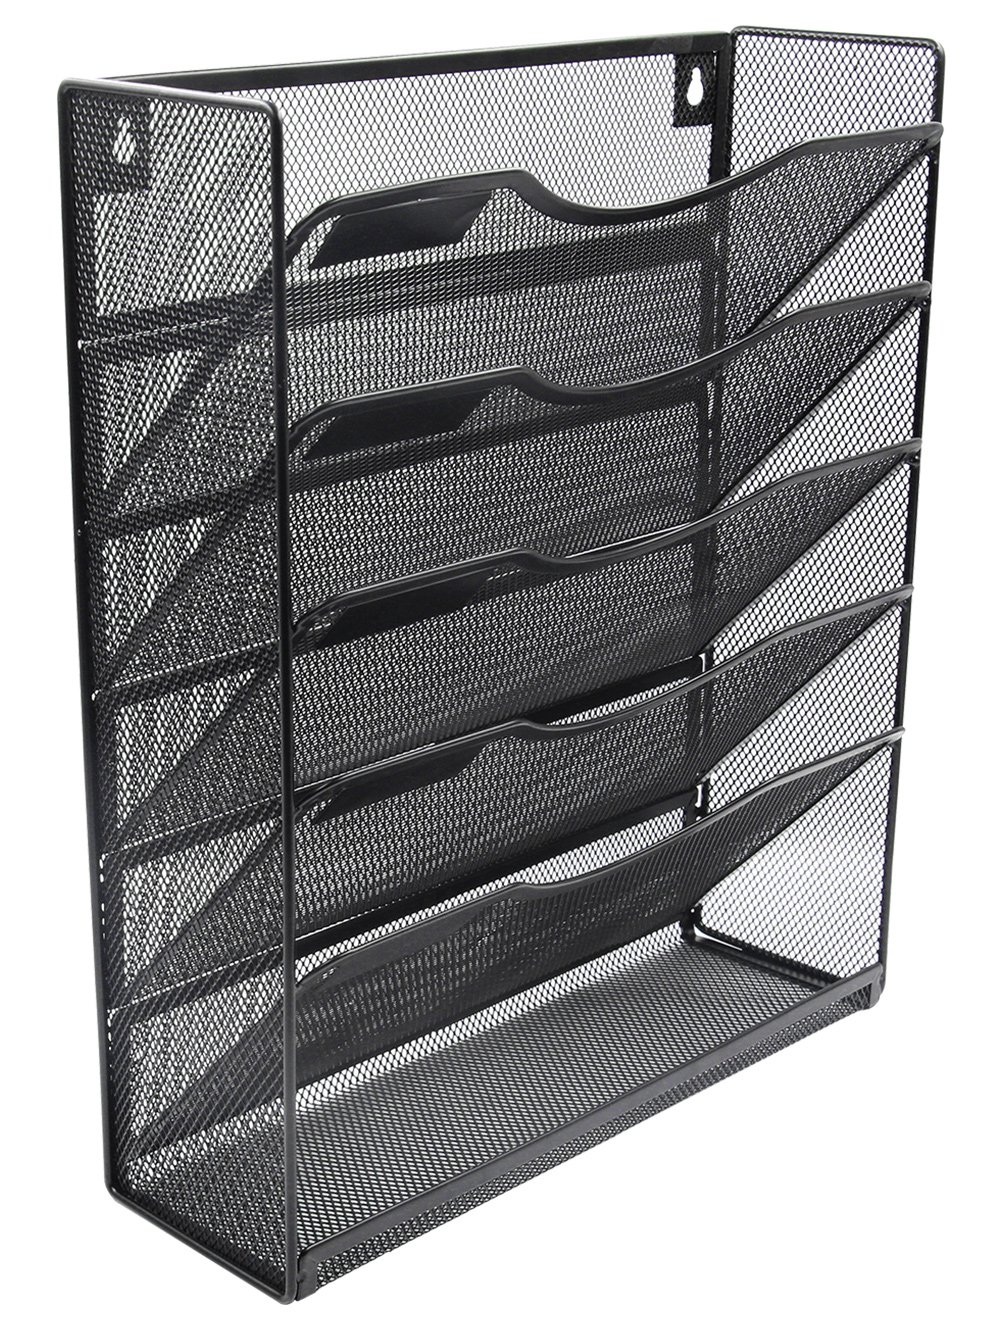 EasyPAG Mesh Wall Hanging File Organizer Holder 5 Tier Vertical Pocket Magzine Rack with Tray,Black by EasyPAG